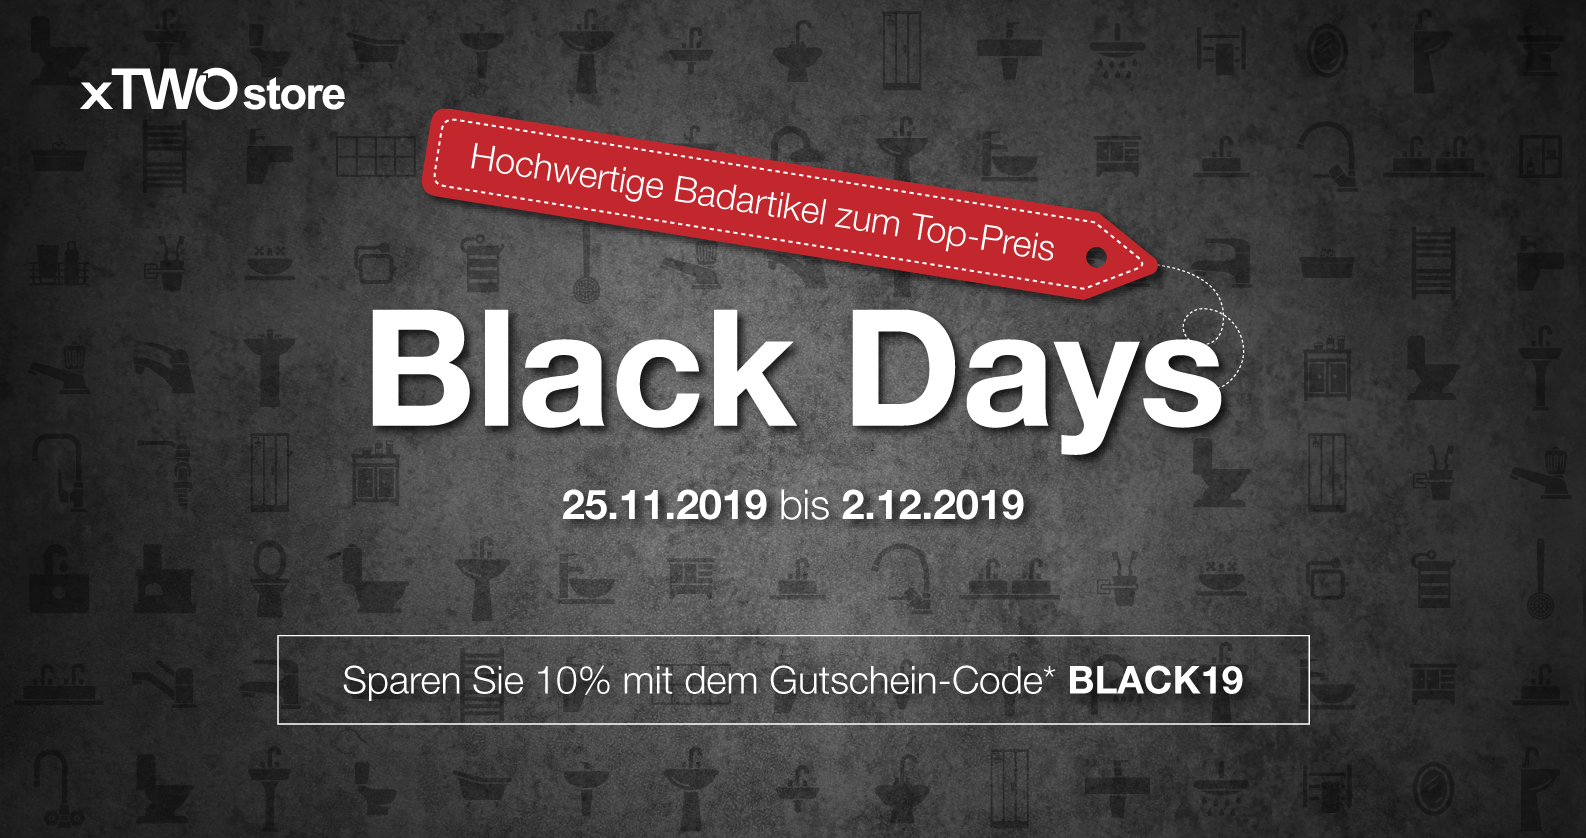 Black Days bei xTWOstore